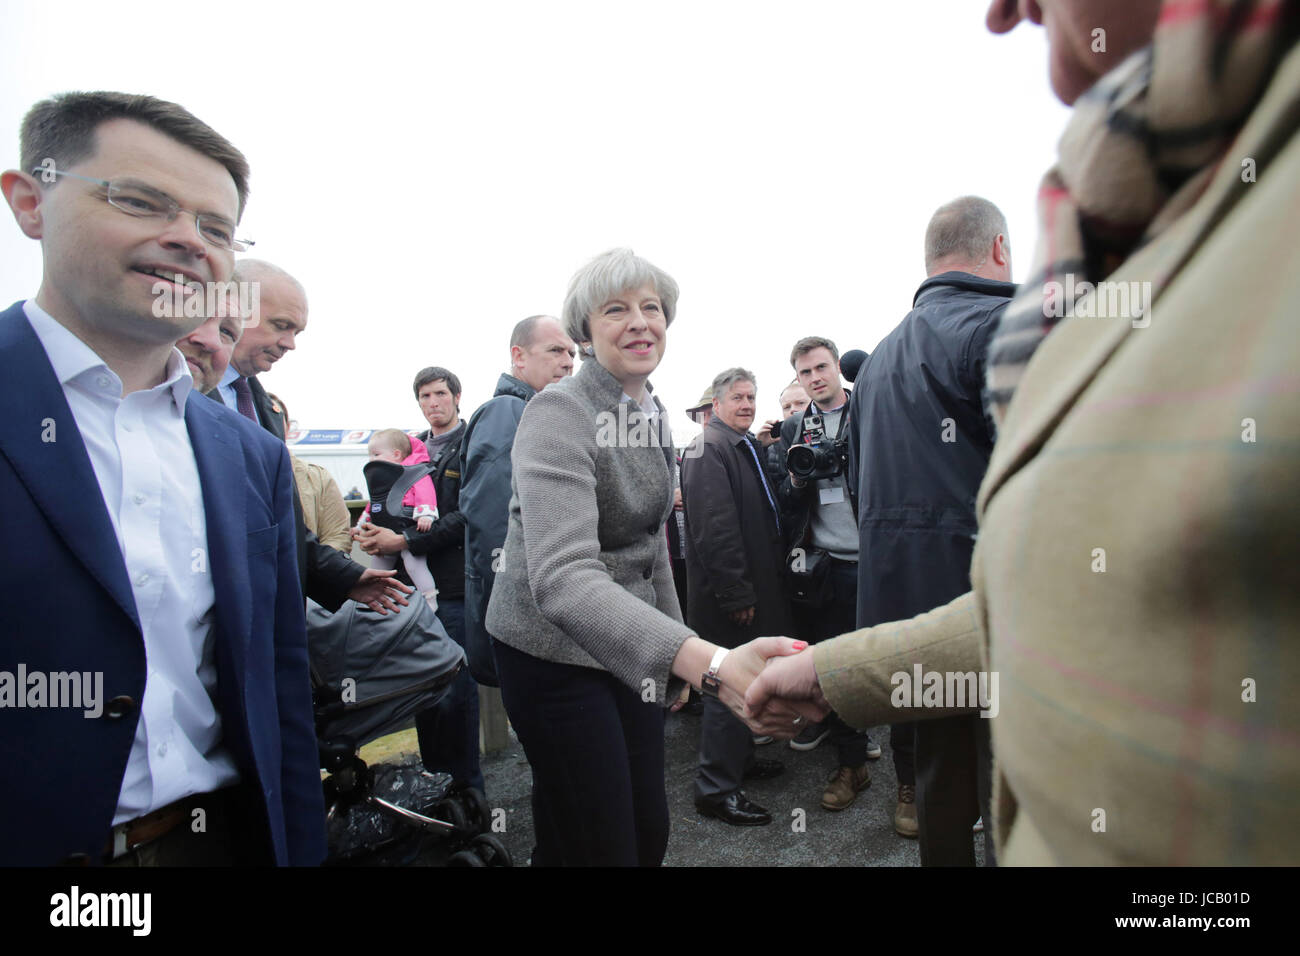 EXCLUSIVE FILE IMAGES - Britian's Prime Minister Theresa May and Northern Ireland Secretary of State for Northern - Stock Image